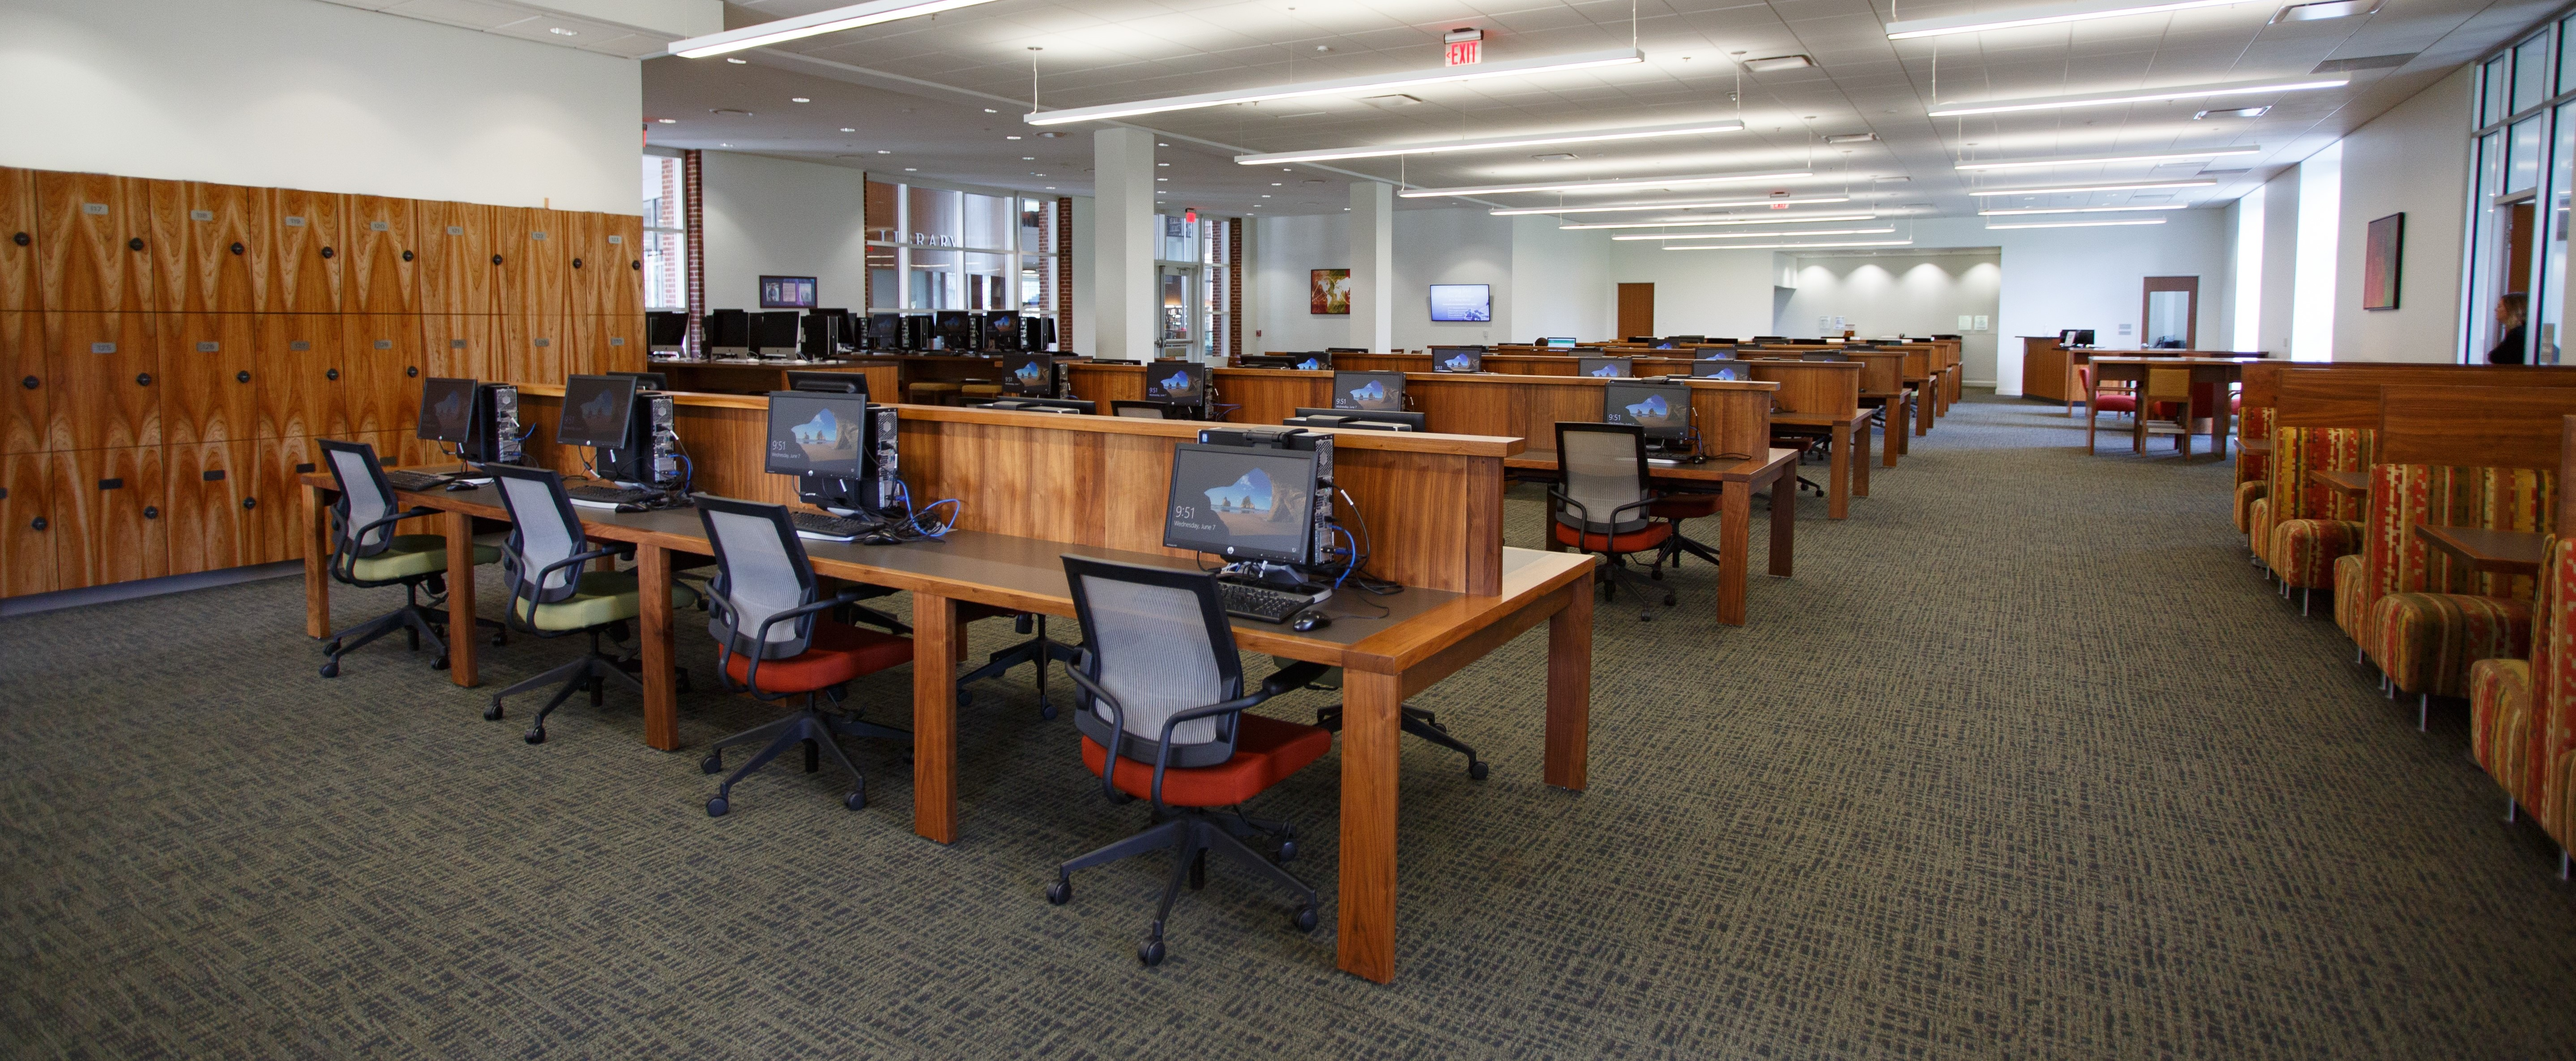 The Dodak Technology Commons in the Jerry Falwell Library